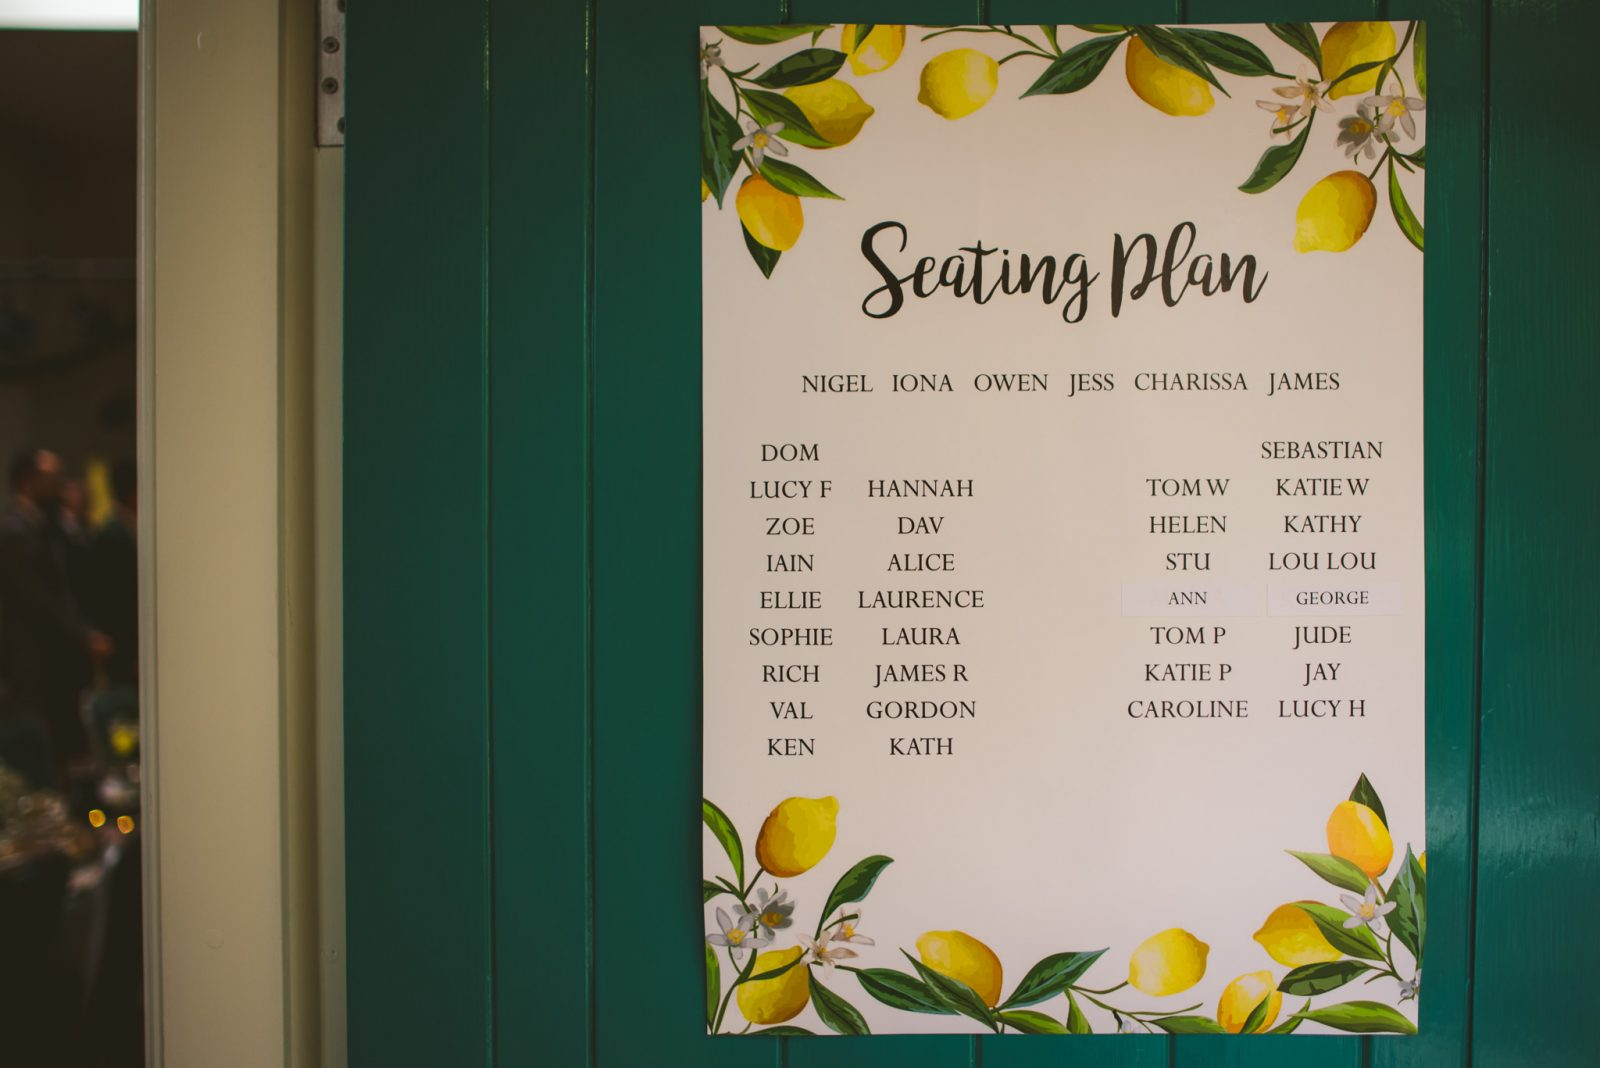 Seating plan yellow lemons